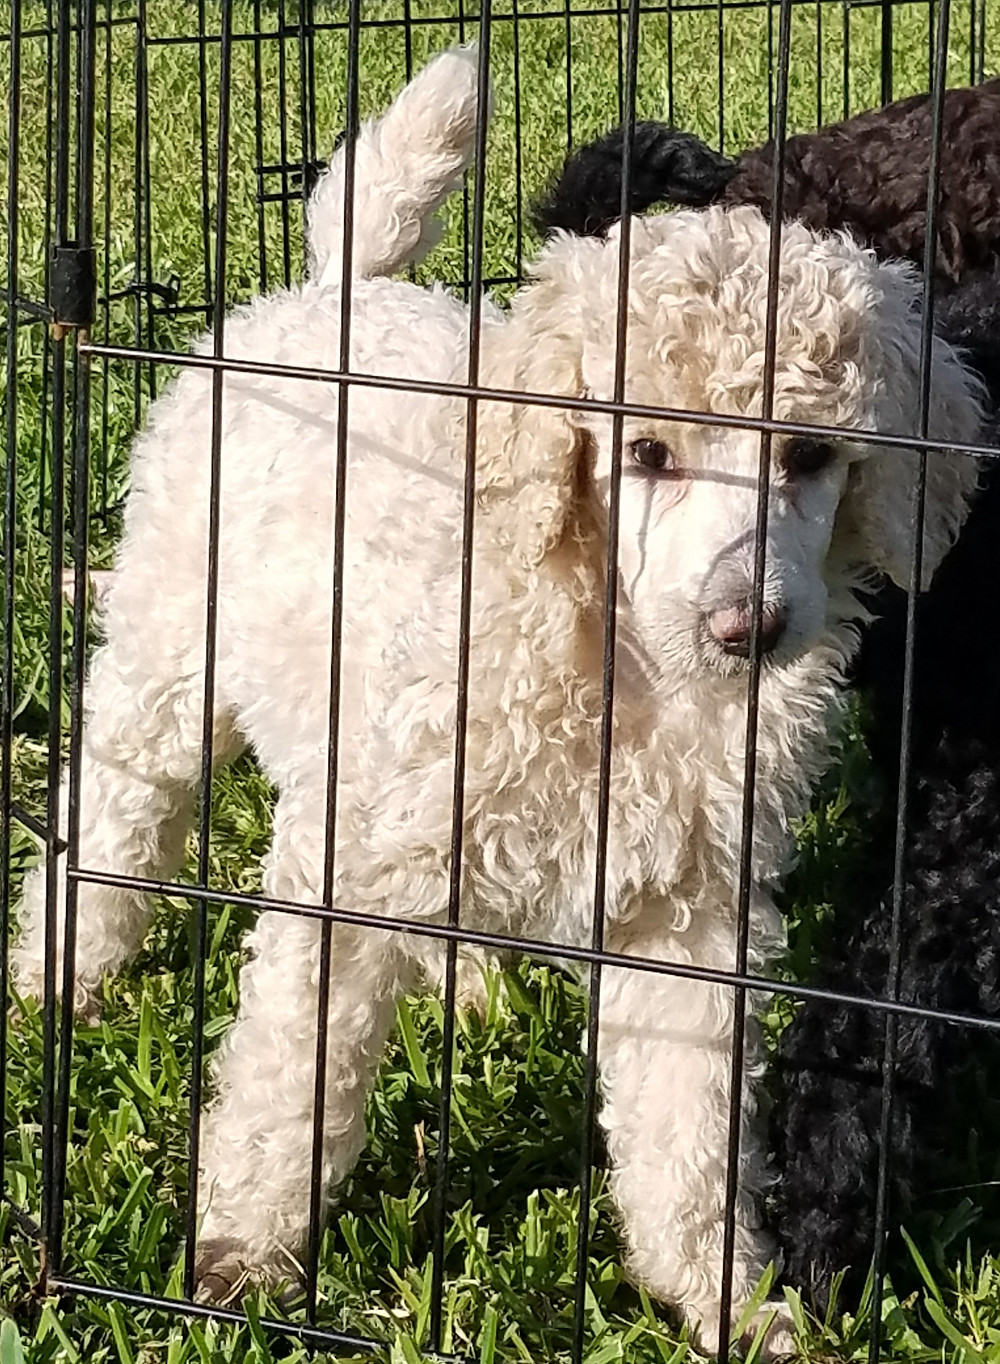 Standard Poodle puppy enjoying time outside